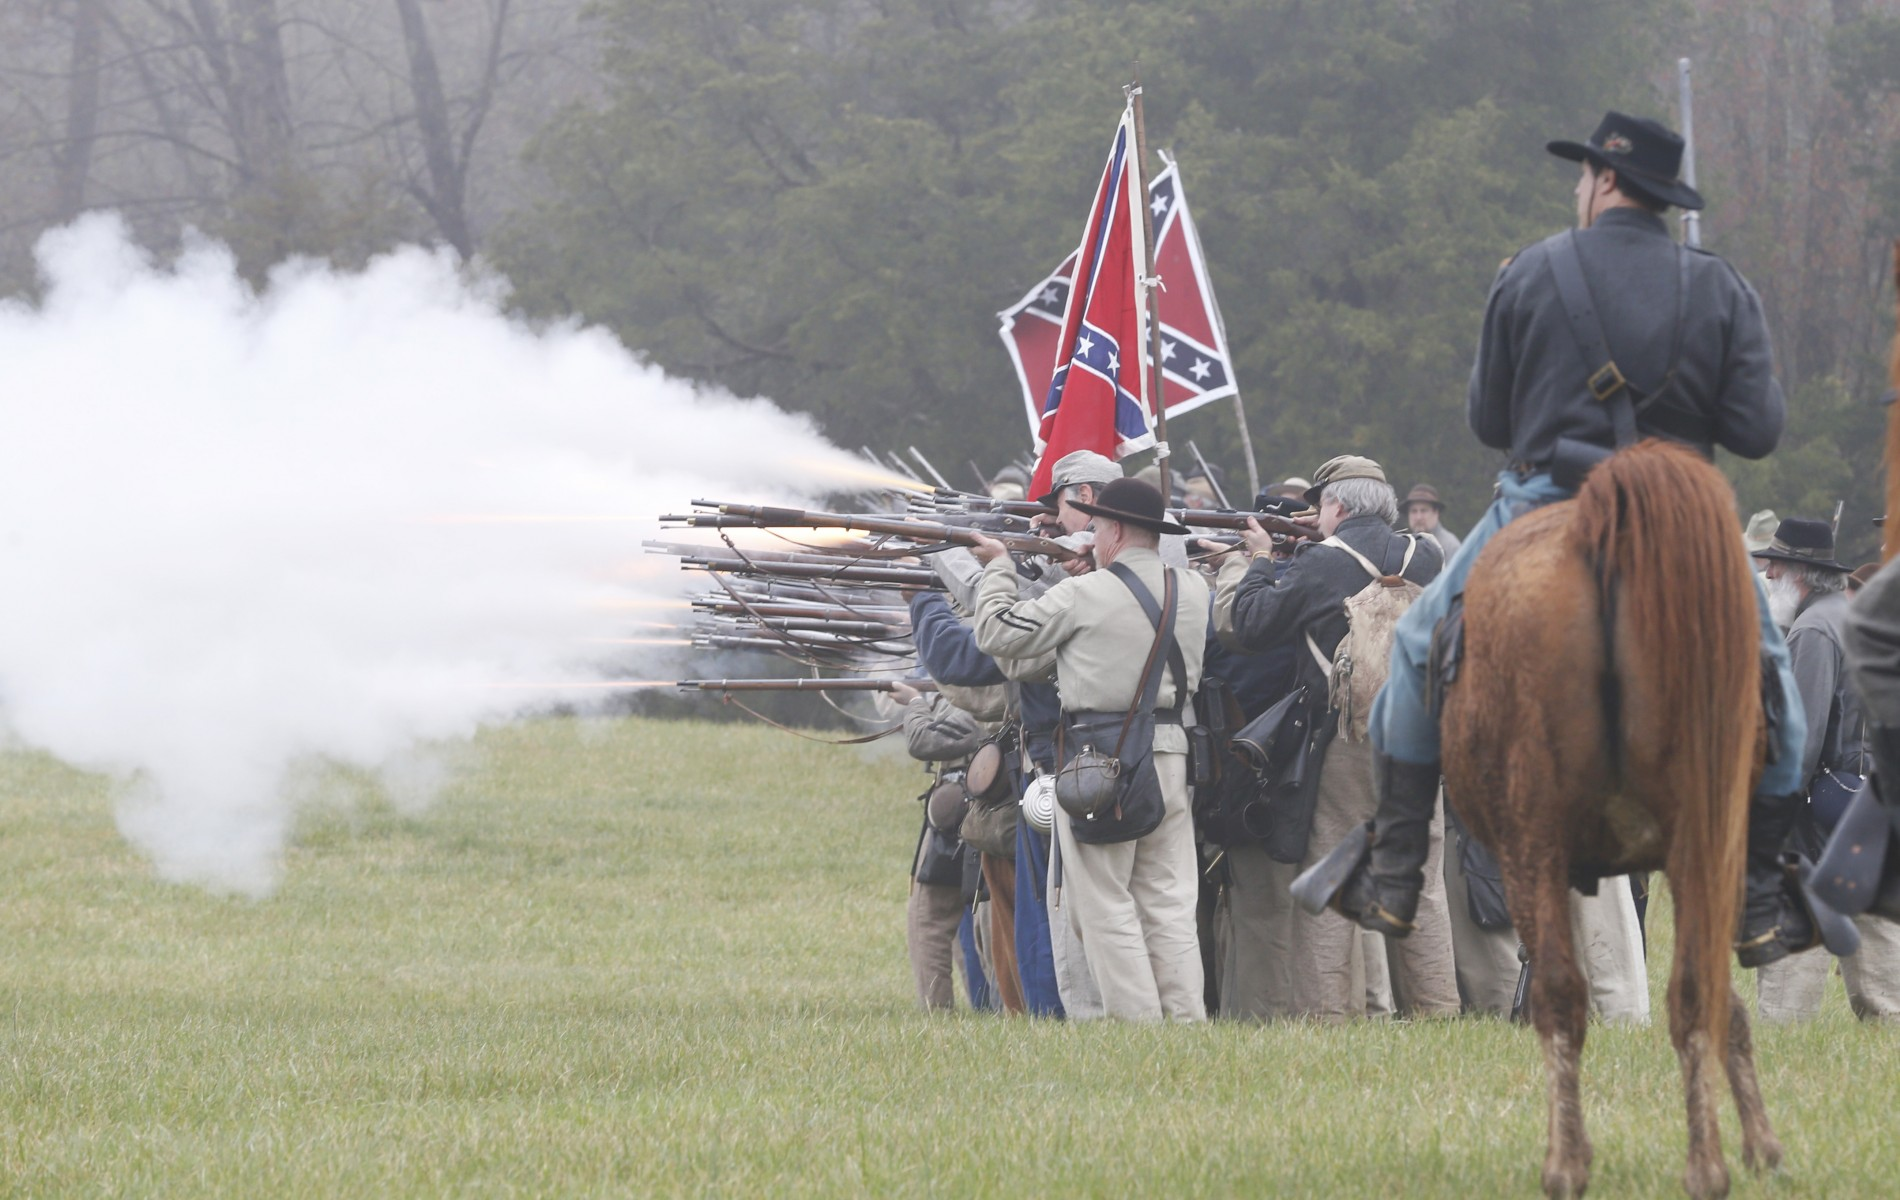 https://media.salon.com/2015/04/civil-war-150th-appomattox.jpeg13-1900x1200.jpg